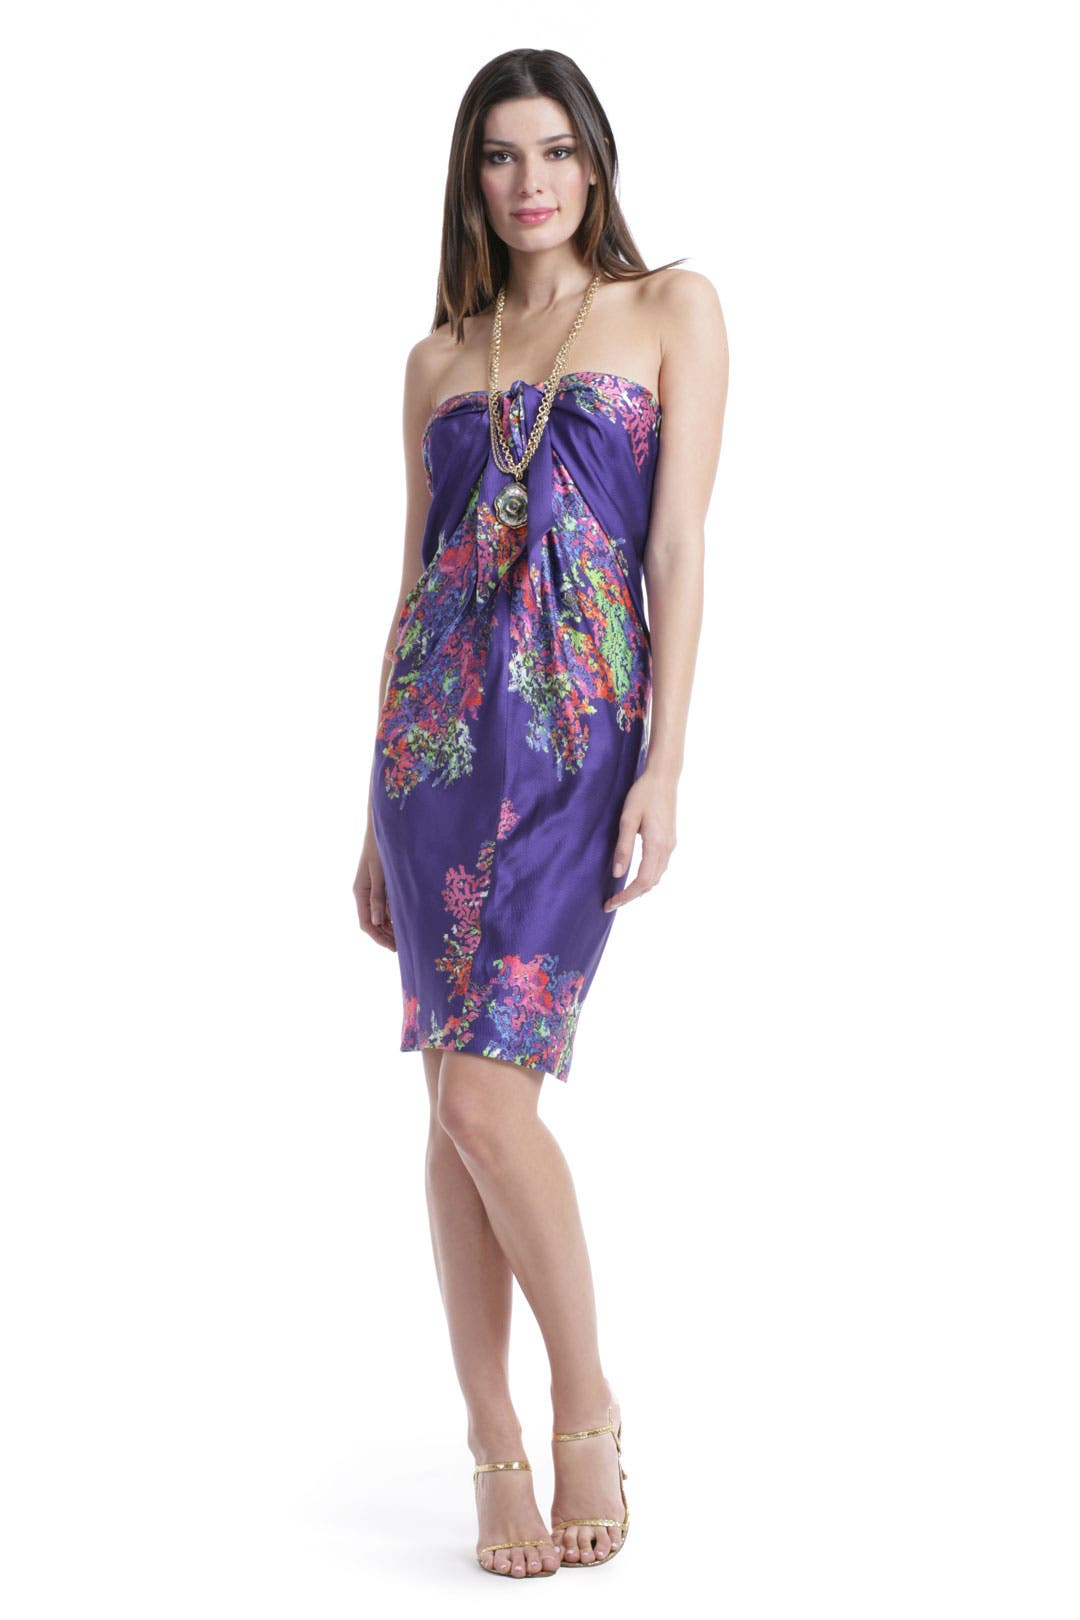 Bahama Mama Dress by Halston Heritage